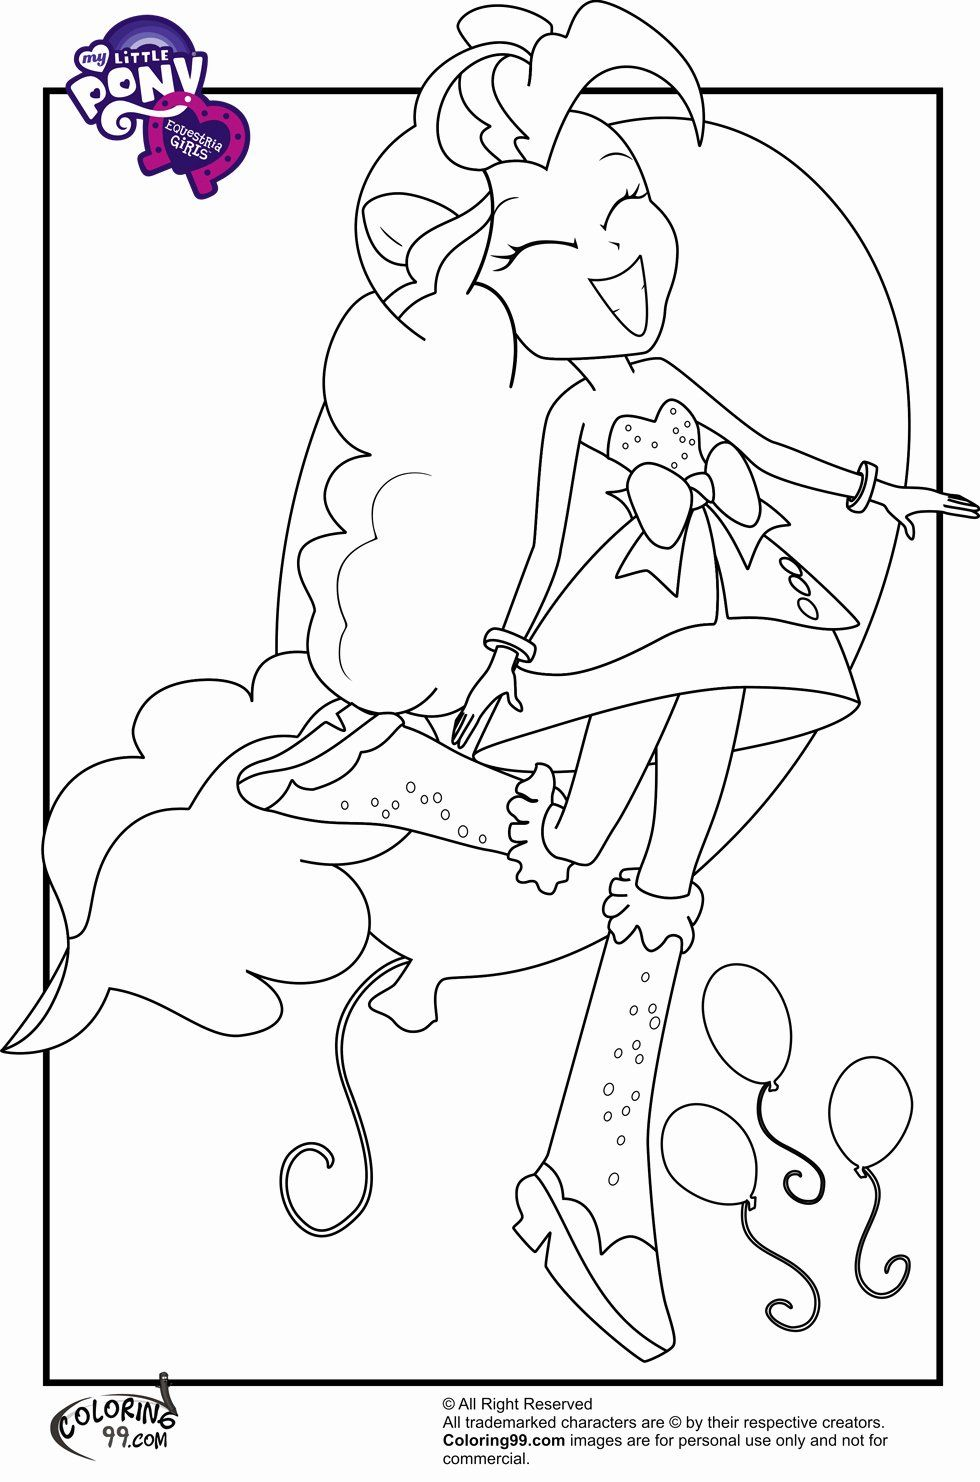 My Little Pony Equestria Girls Coloring Page Best Of My Little Pony Equestria Girls Coloring Pages My Little Pony Coloring Coloring Pages For Girls Coloring Pages